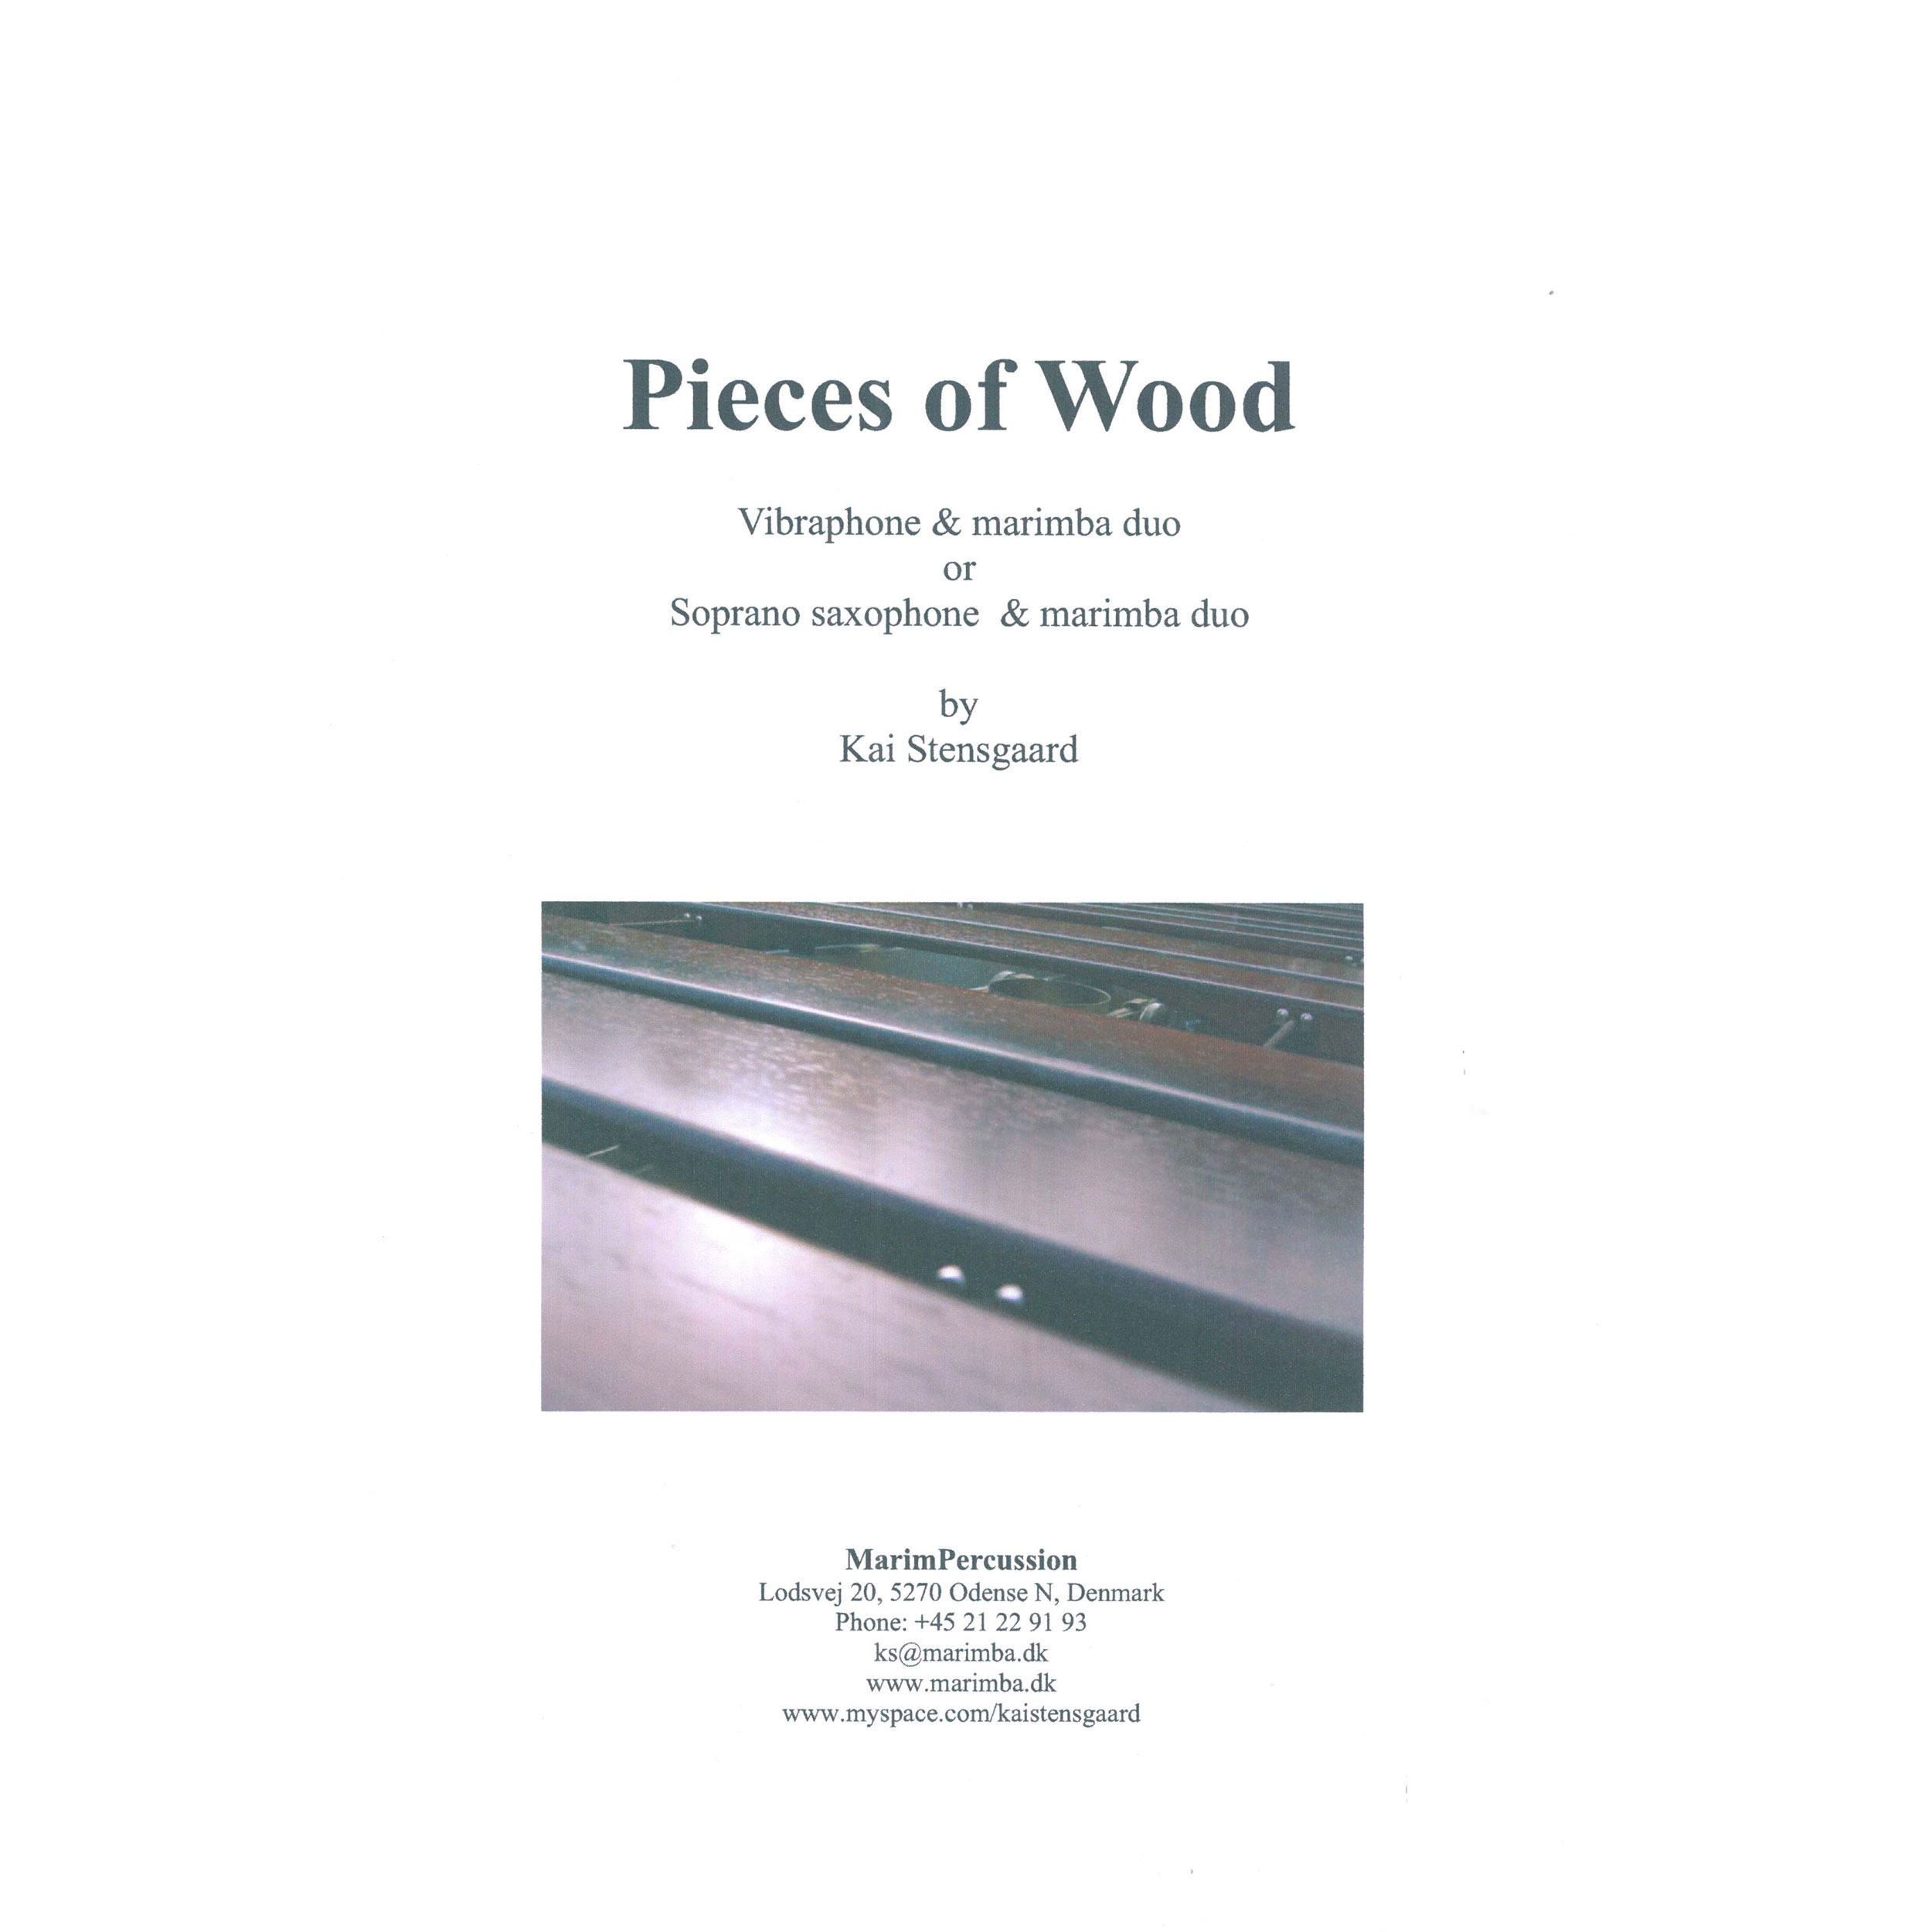 Pieces of Wood (Vibraphone/Marimba Duet or Soprano Saxophone/Marimba Duet) by Kai Stensgaard